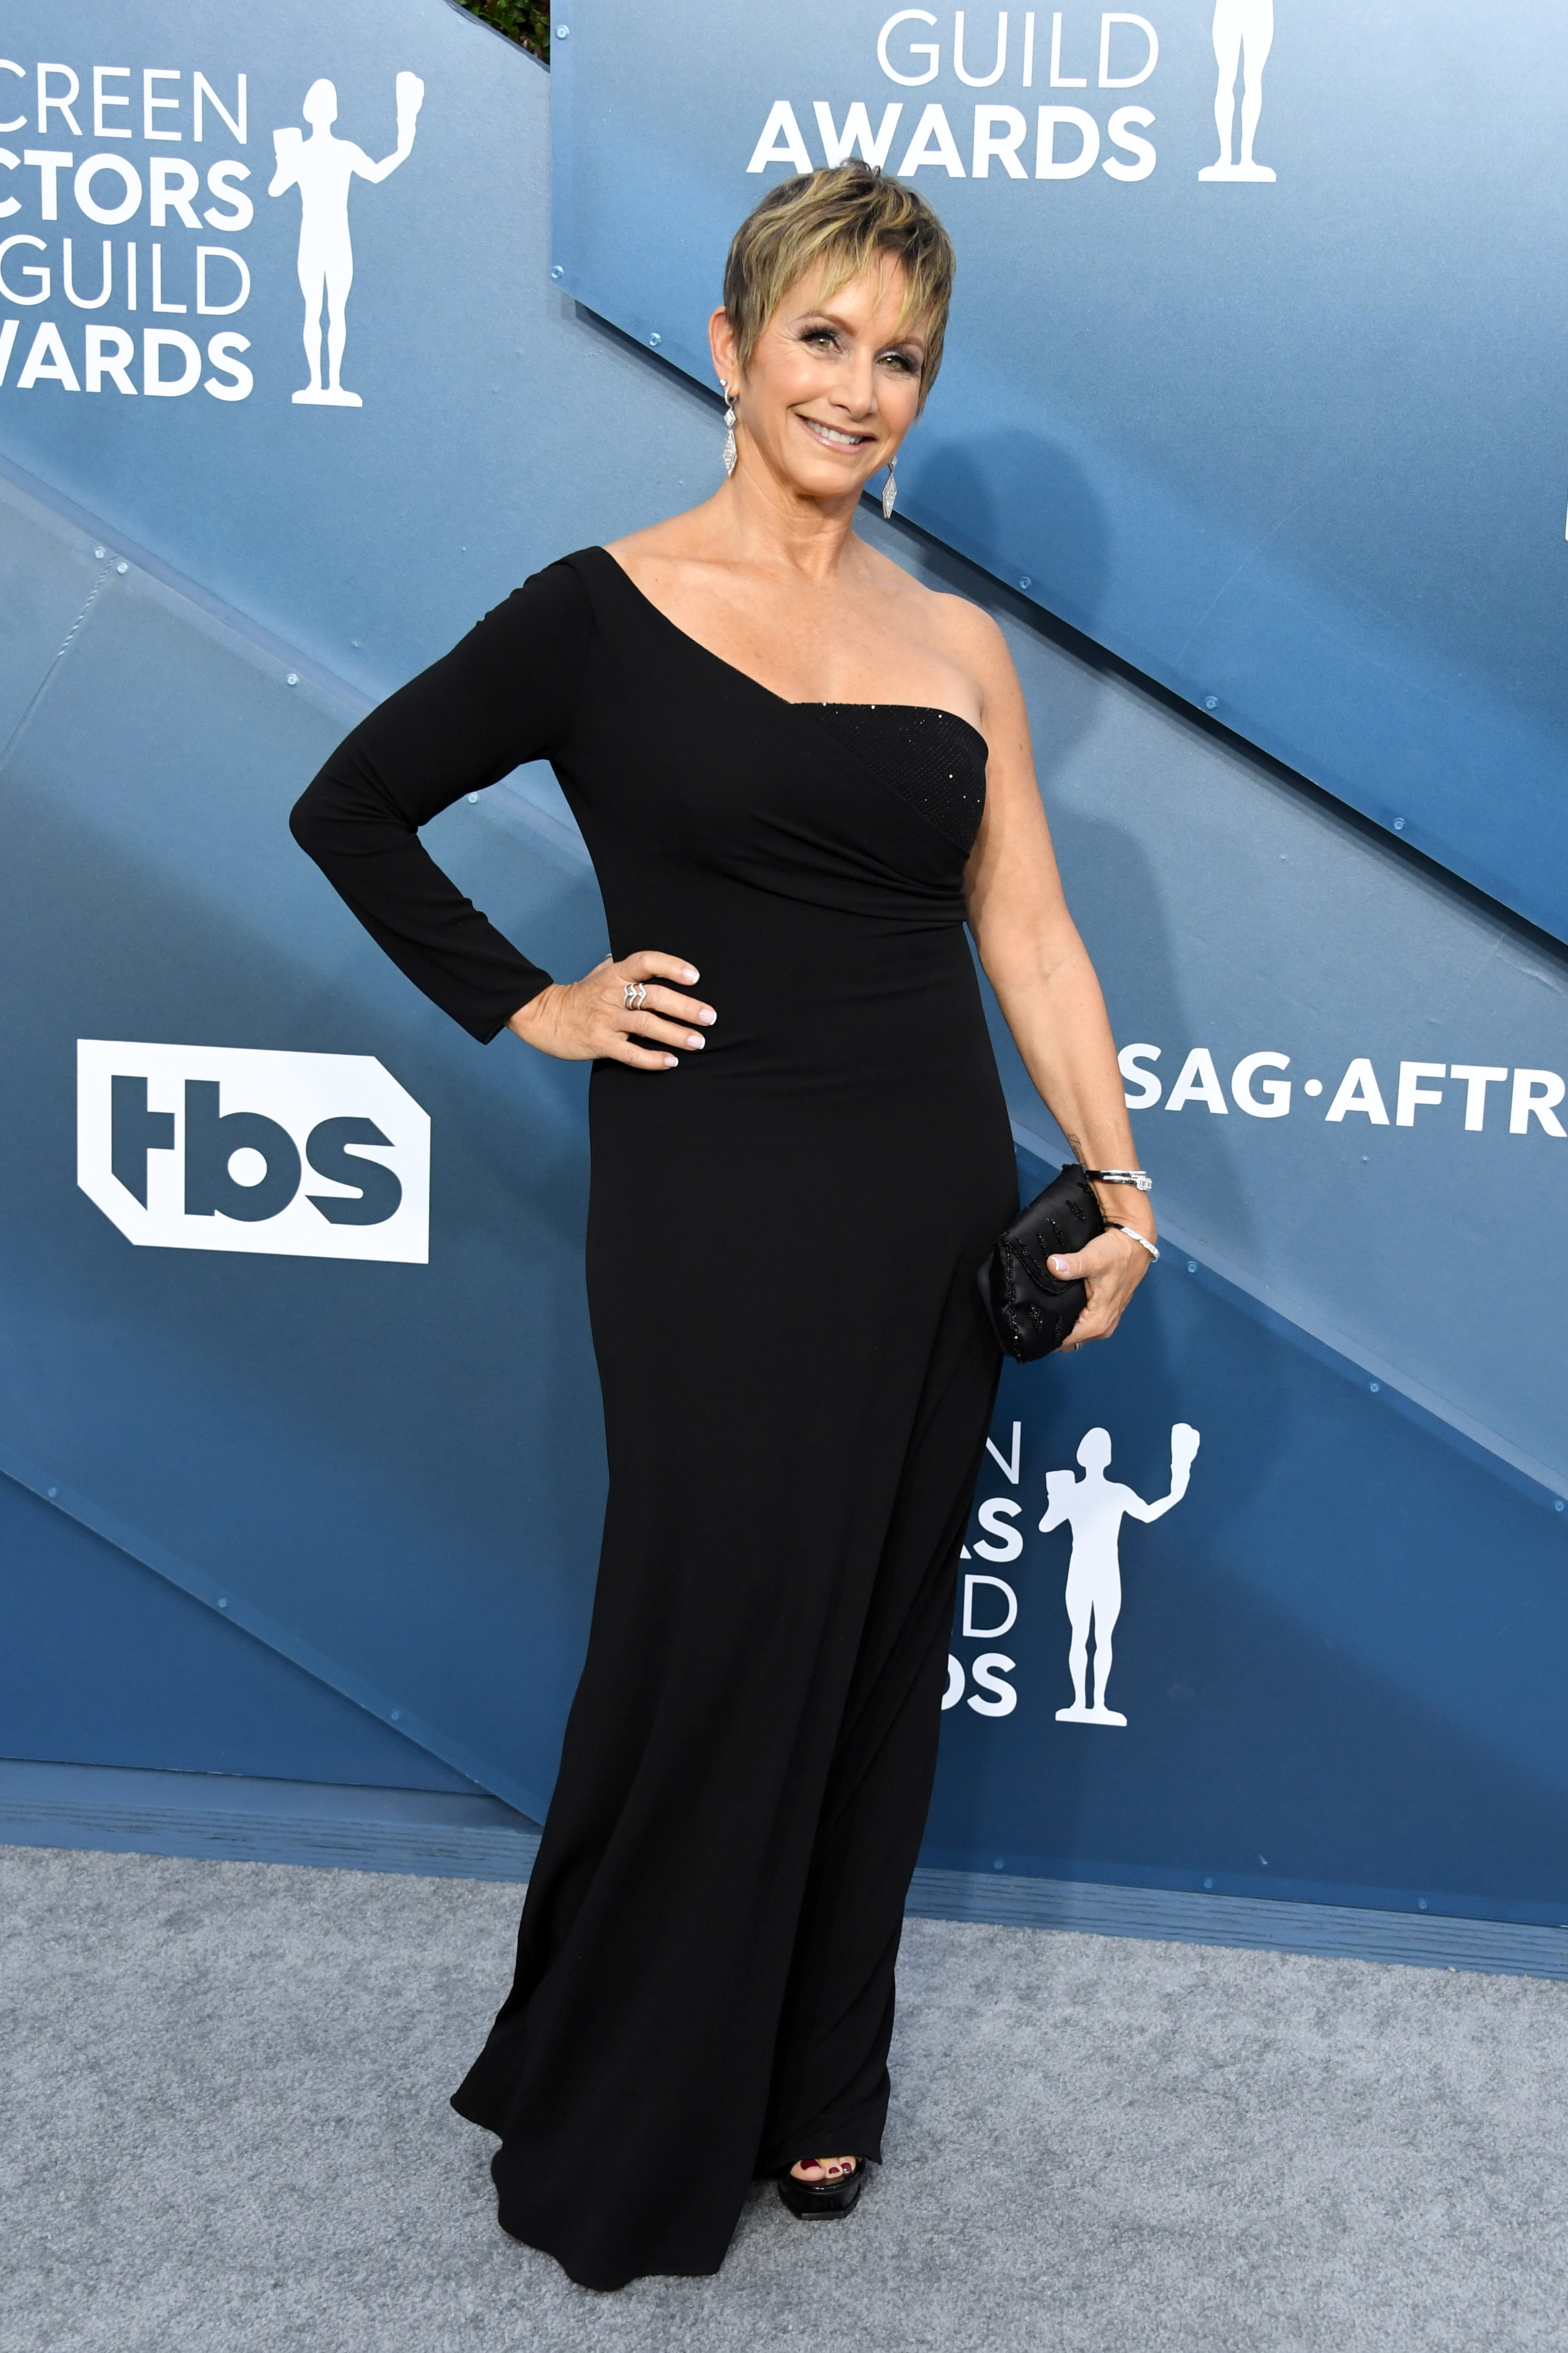 LOS ANGELES, CALIFORNIA - JANUARY 19: SAG-AFTRA President Gabrielle Carteris attends the 26th Annual Screen ActorsGuild Awards at The Shrine Auditorium on January 19, 2020 in Los Angeles, California. (Photo by Jon Kopaloff/Getty Images)